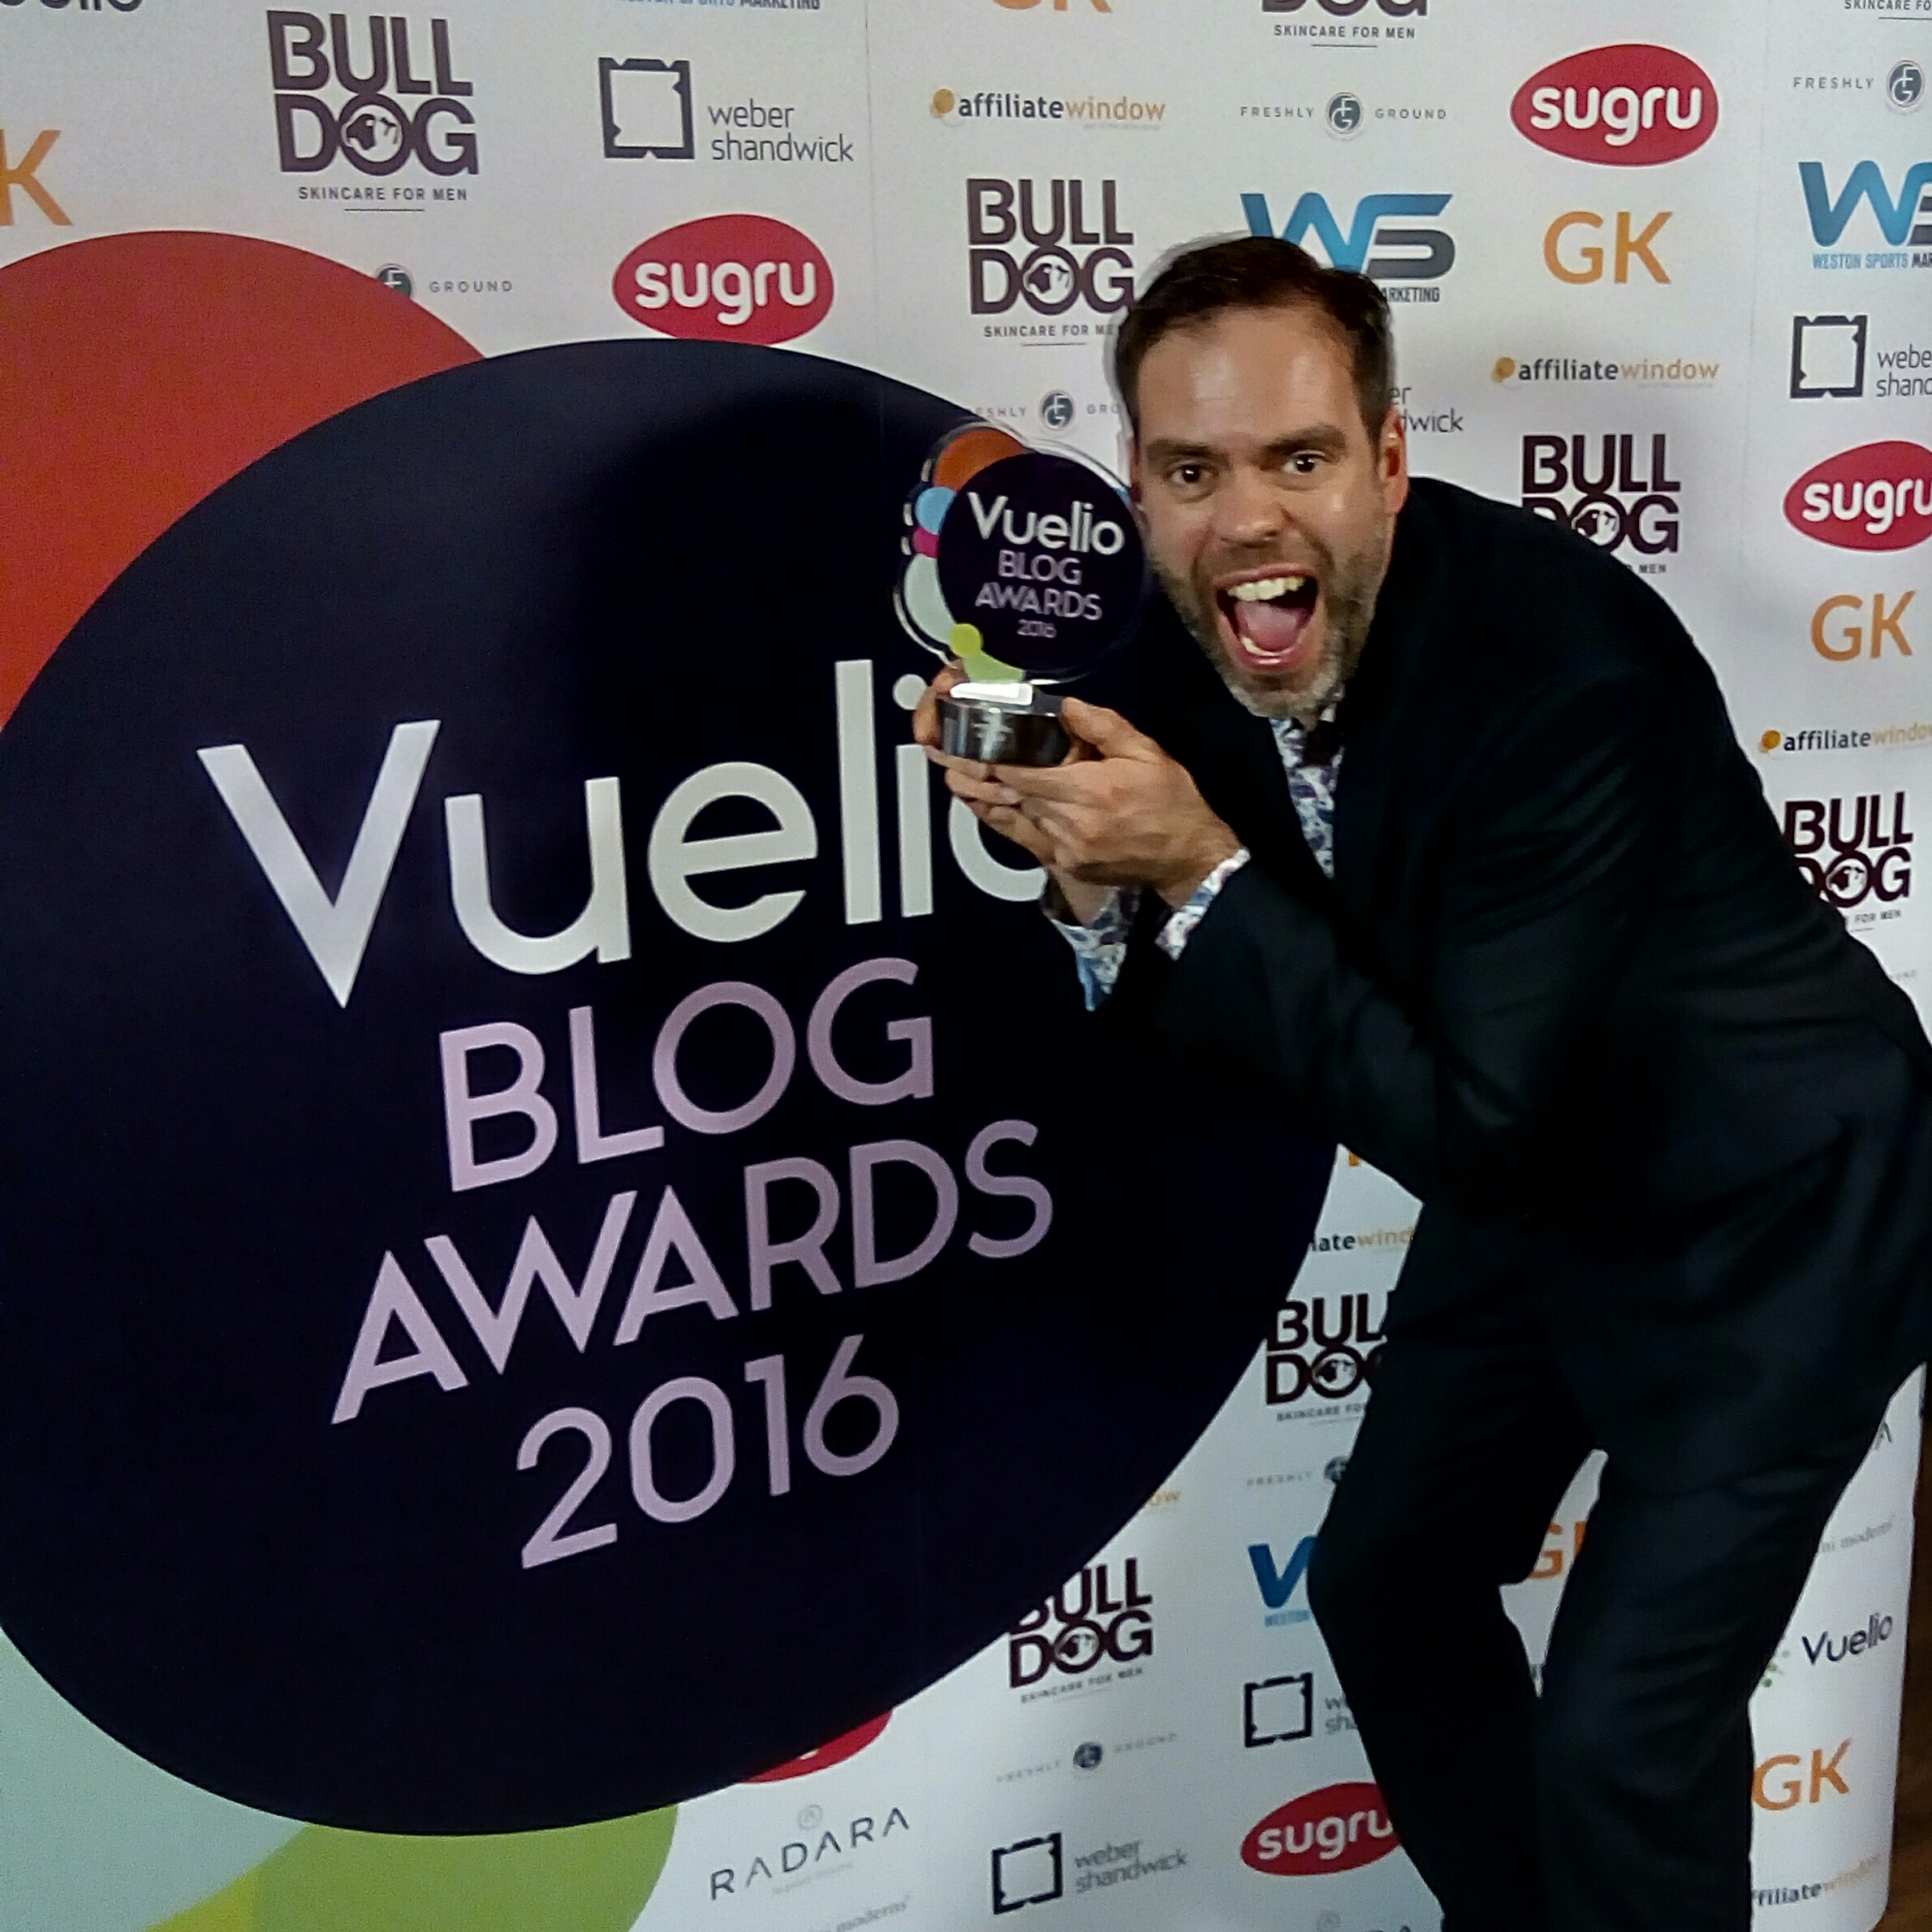 Vuelio, #Vuelioblogawards